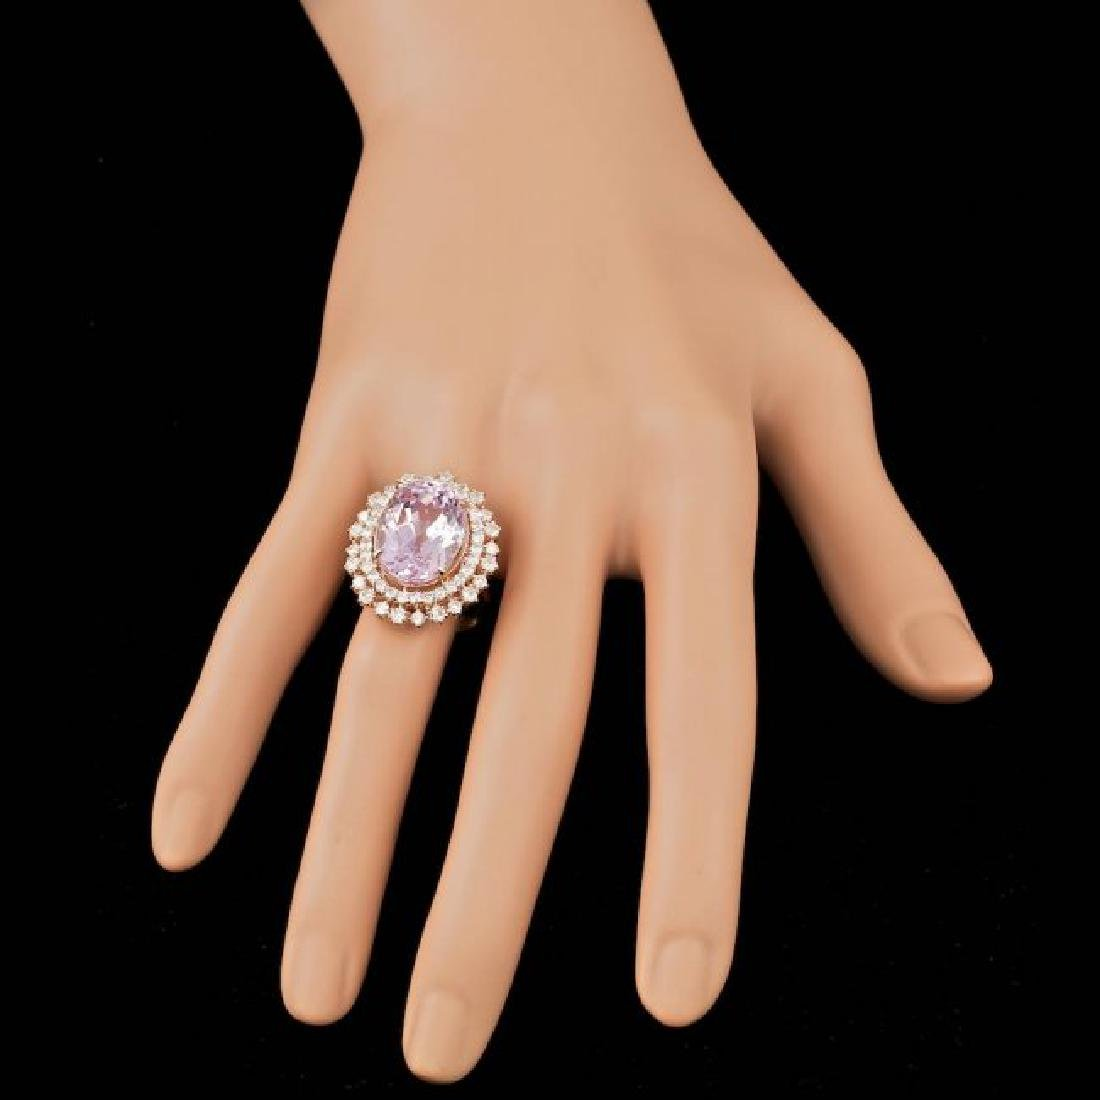 14k Rose Gold 13.50ct Kunzite 1.85ct Diamond Ring - 4